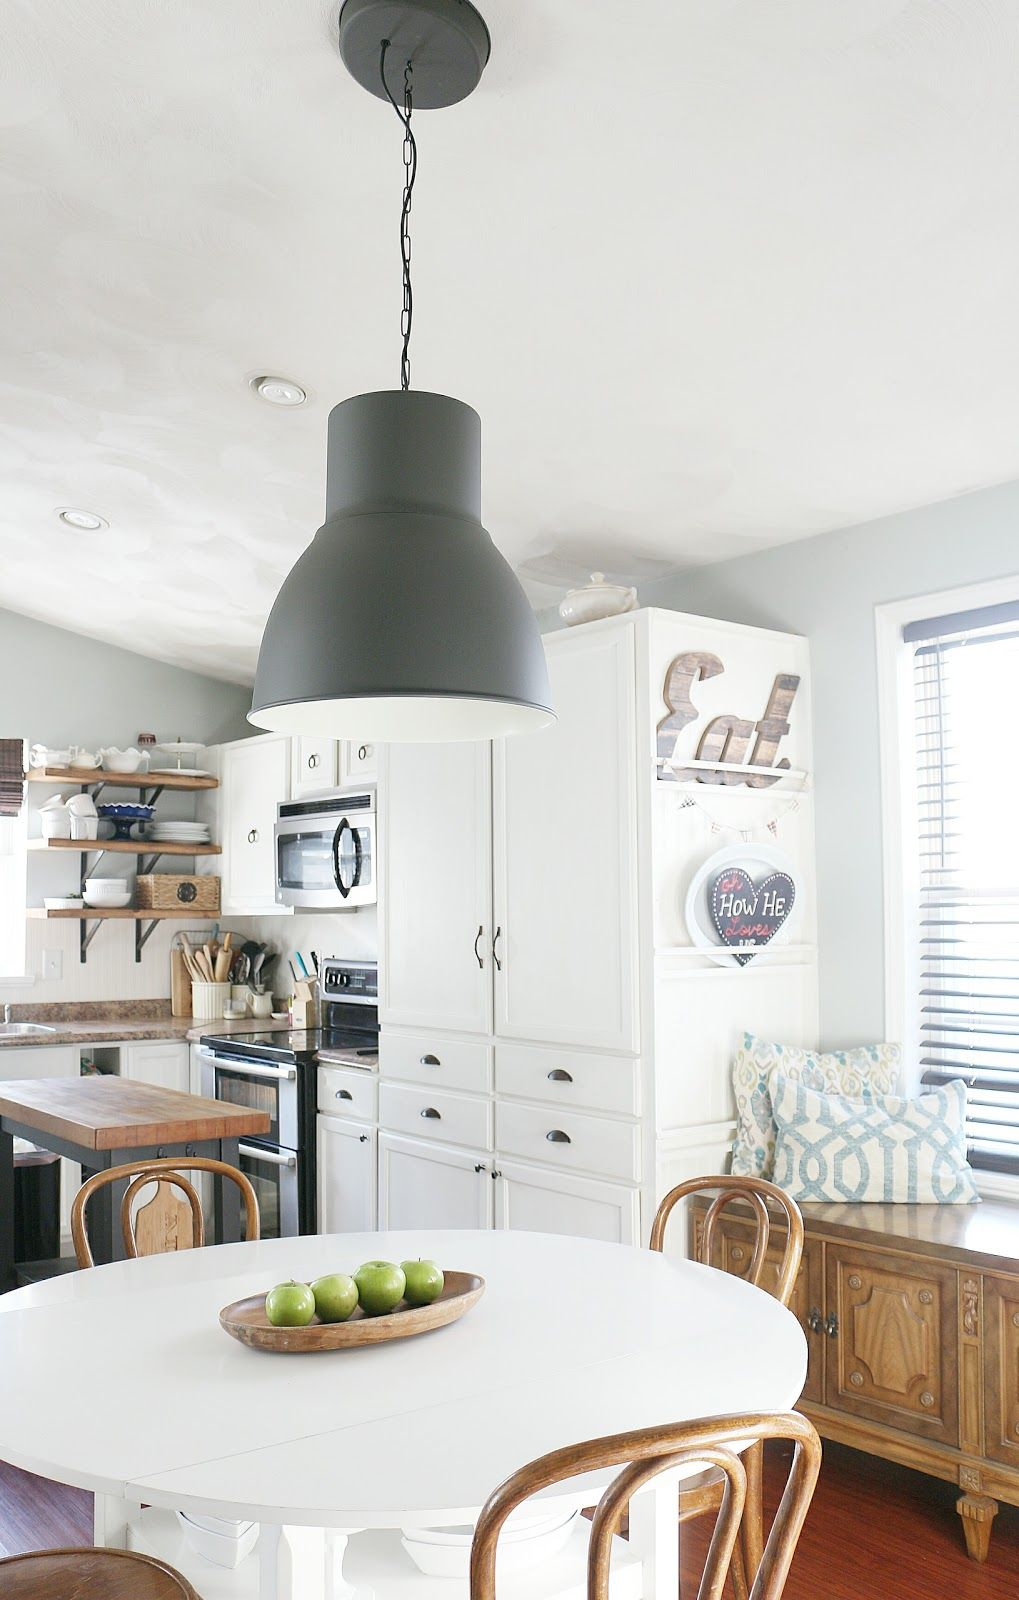 New Dining Room Lighting, Ikea Hektar Pendant | Pinterest | Kitchens ...